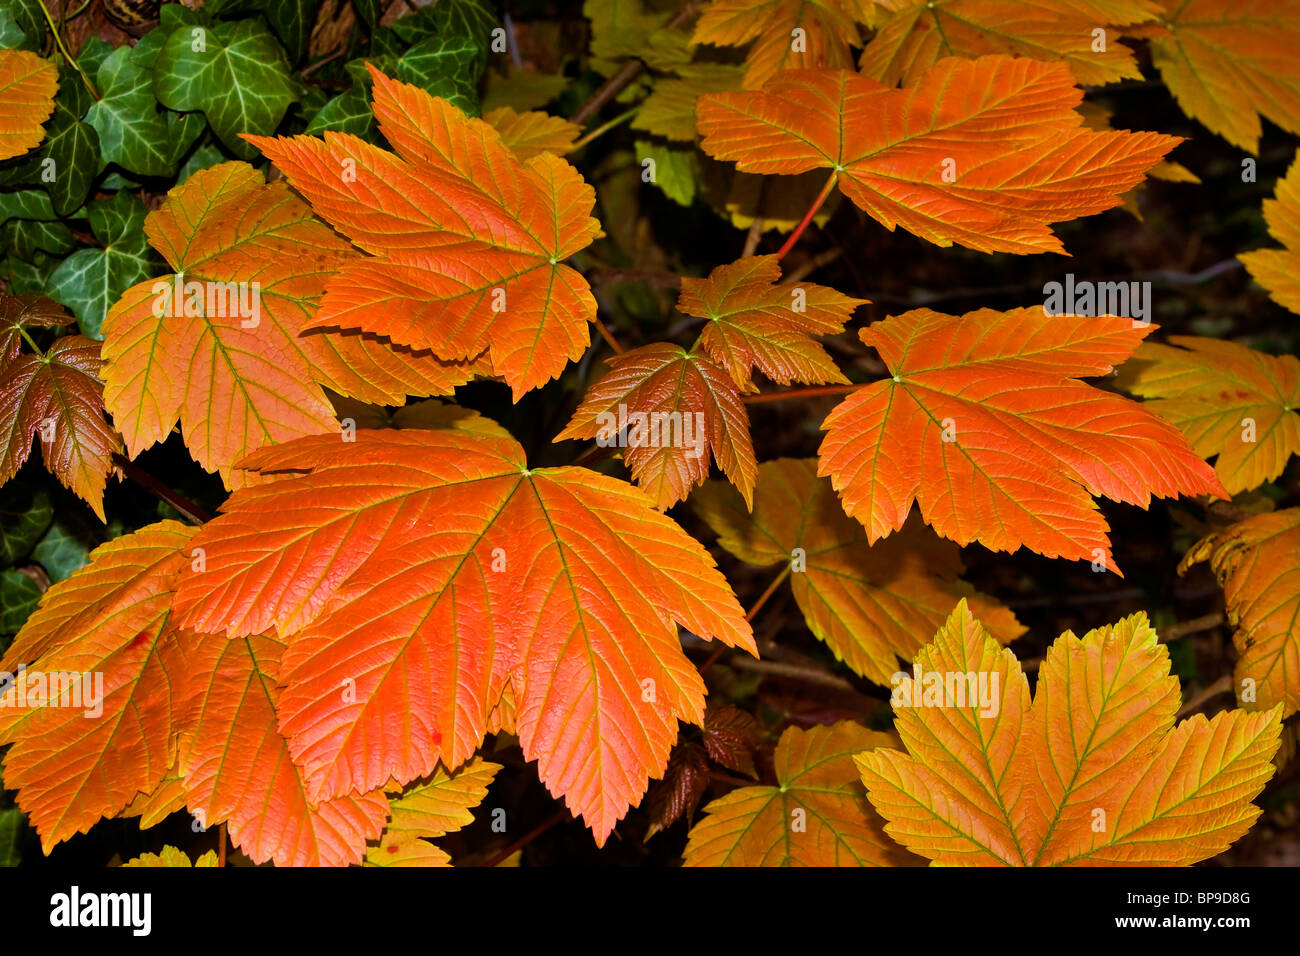 sycamore maple leaves autumn colours - Stock Image